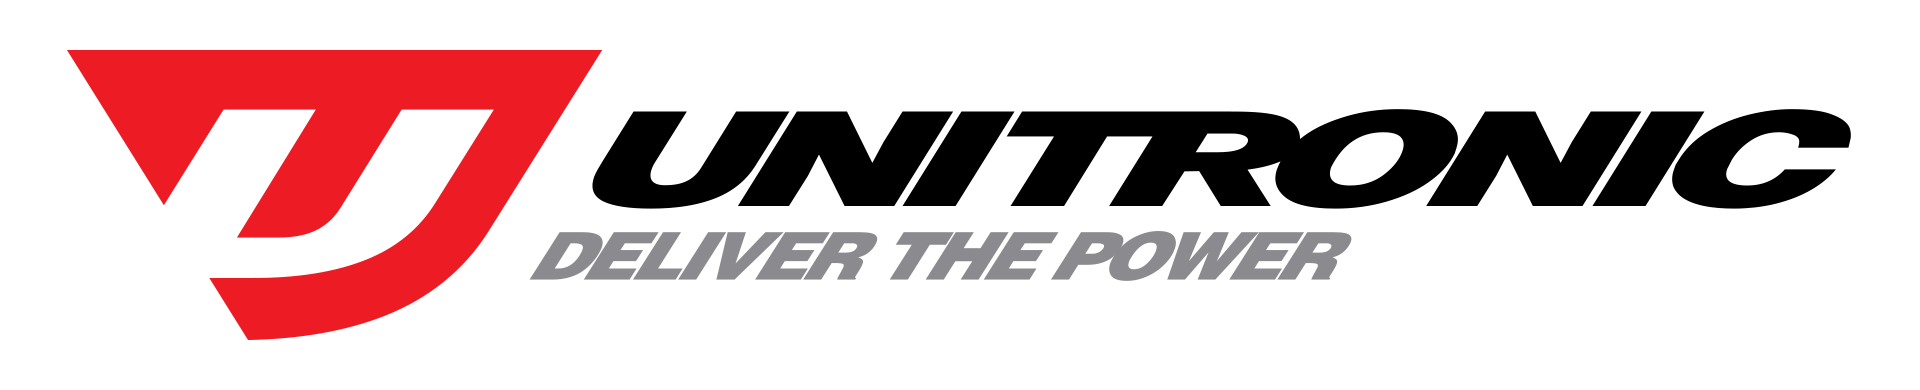 1920x390-Full-Logo-Black-Unitronic-deliverthepower.png